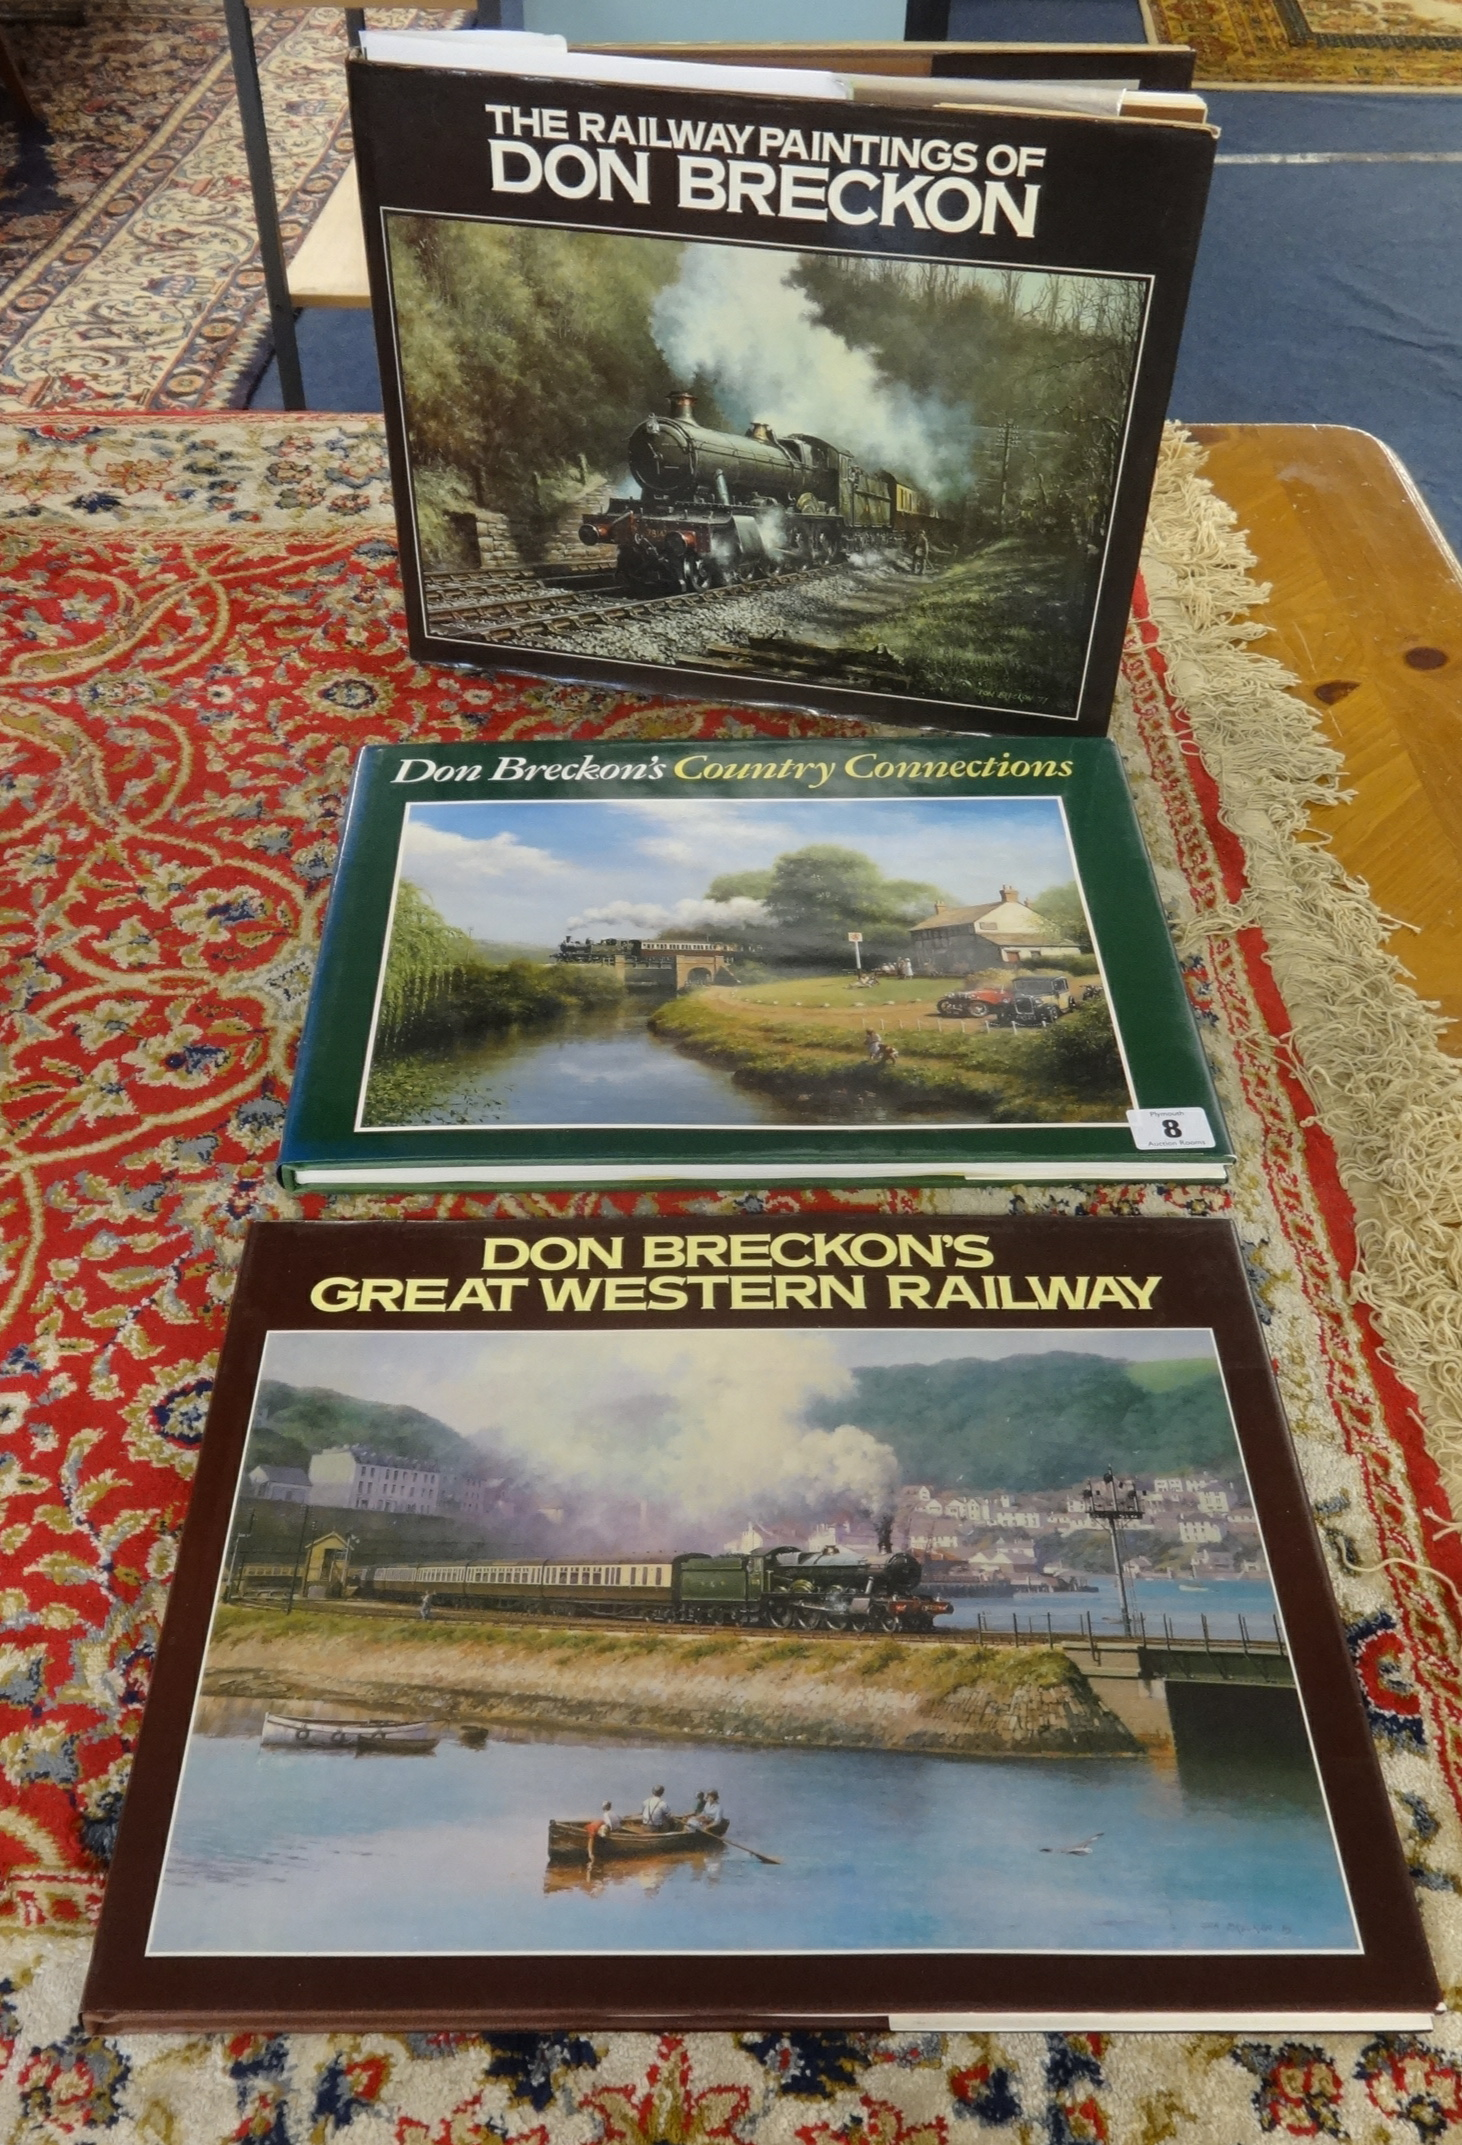 Lot 008 - Three Don Breckon books including Don Breckon Great Western Railway published by David and Charles